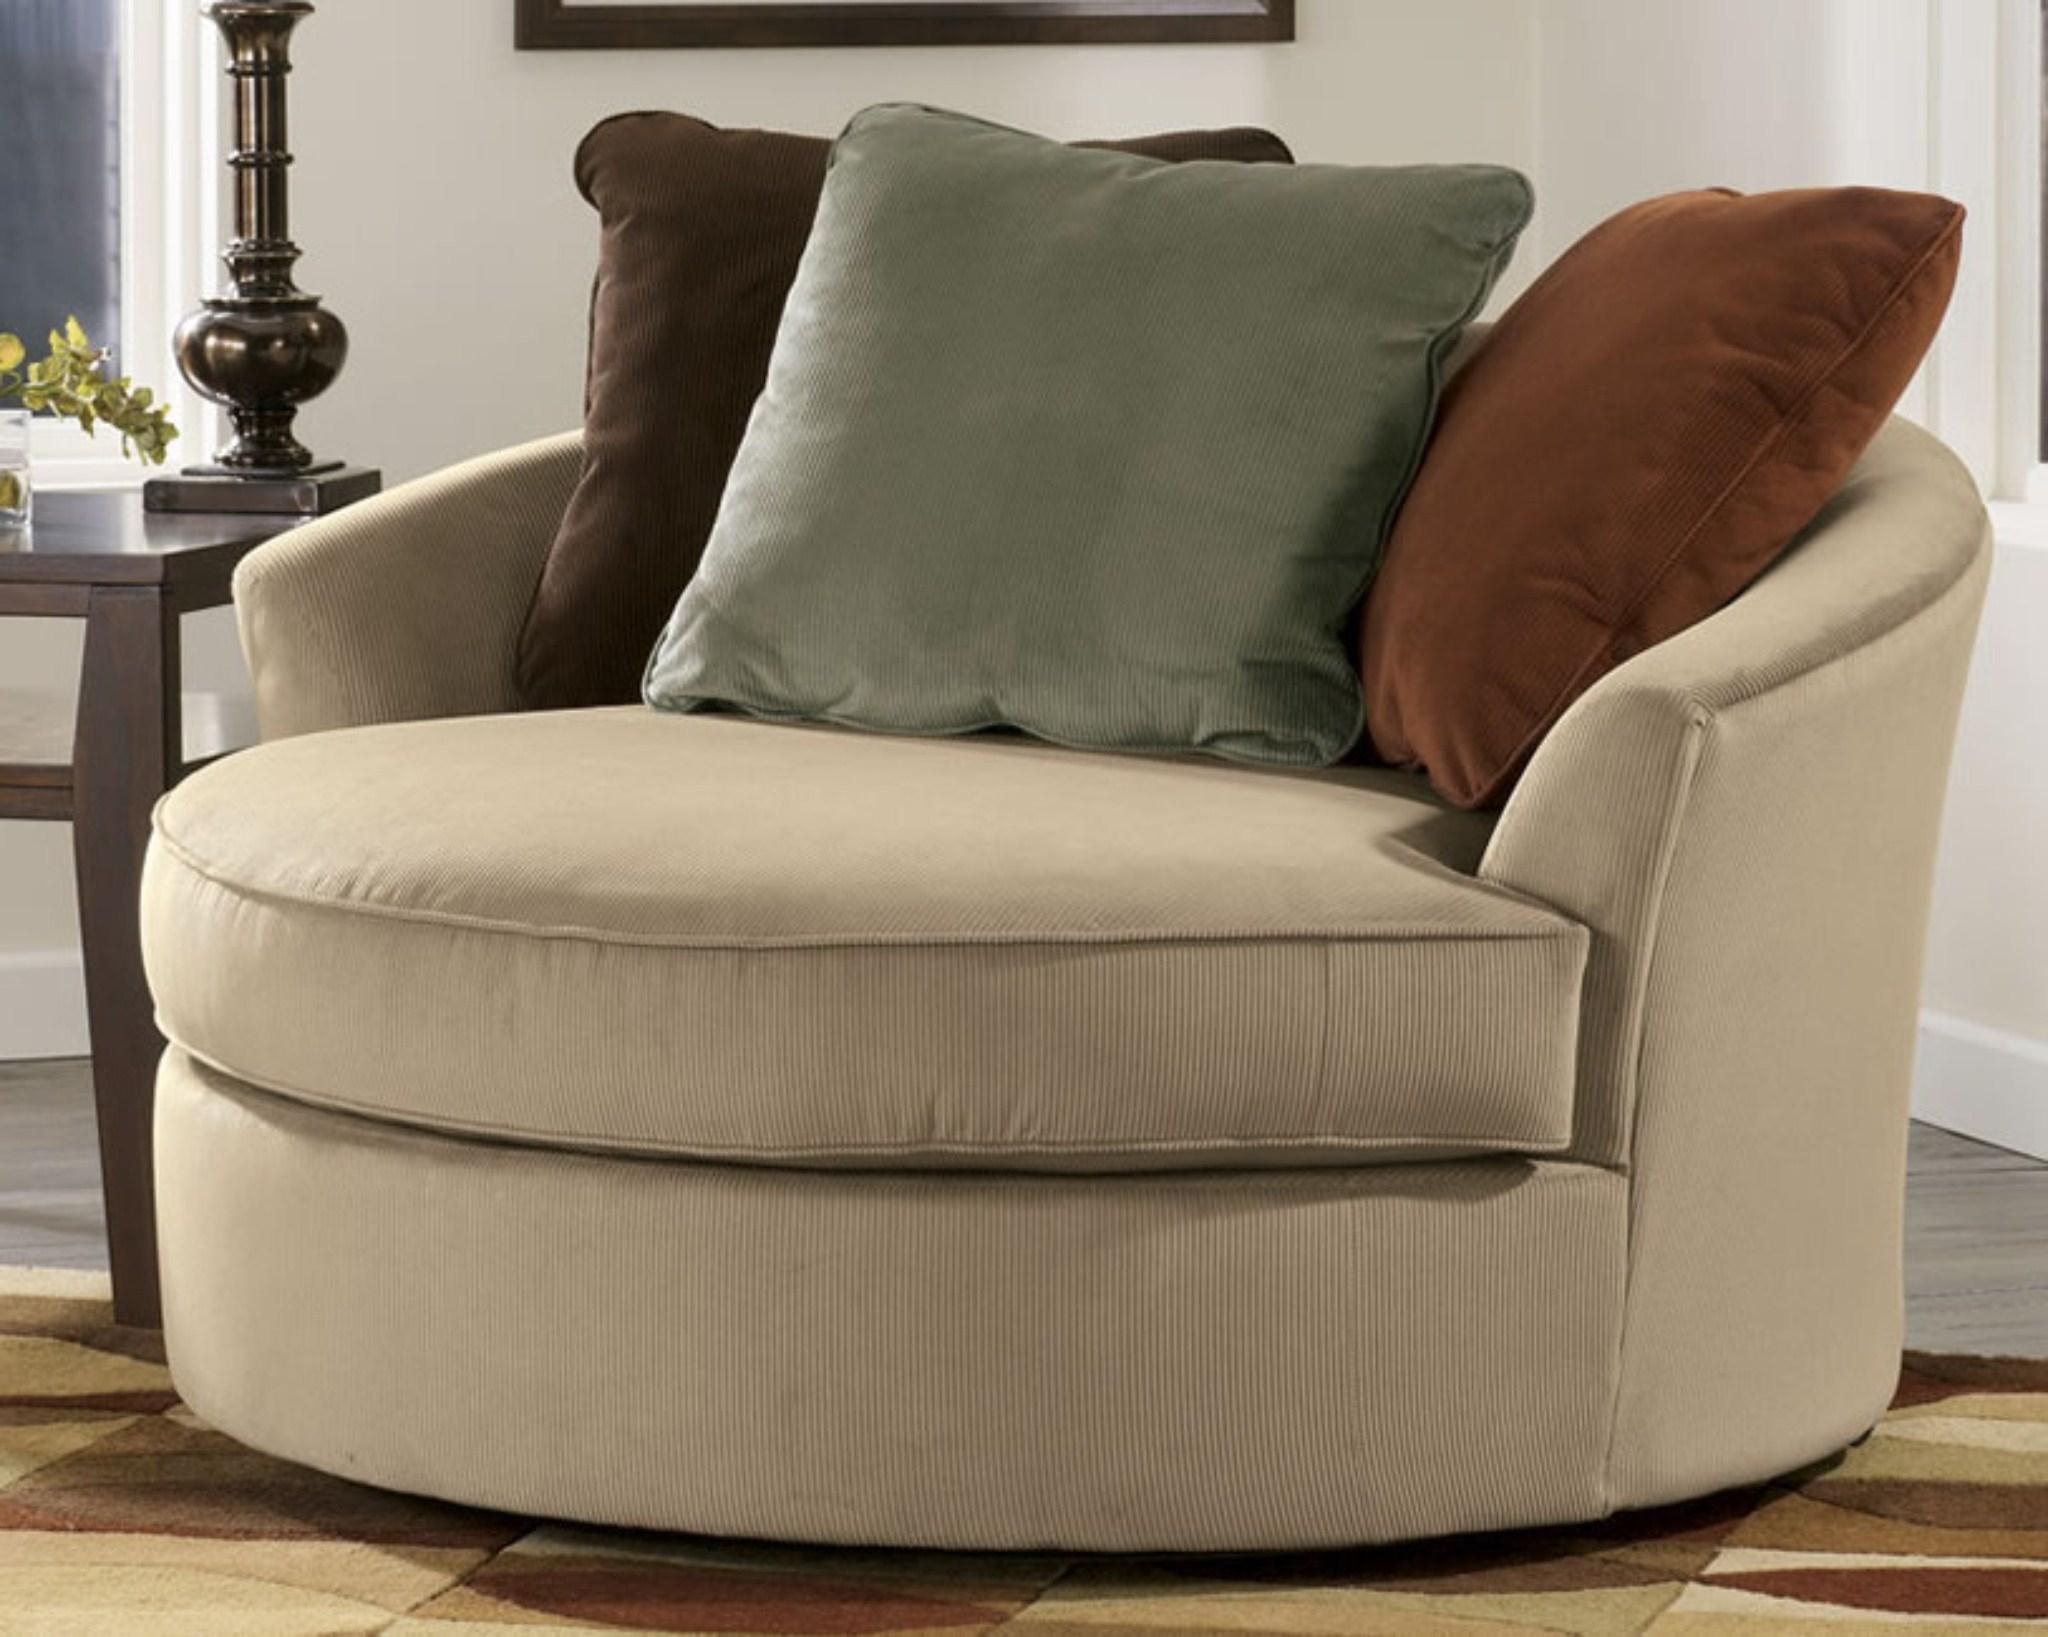 Oversized Sofa Chair Oversized Sofa Chairs Oversized Chaise Lounge Sofa Thesofa